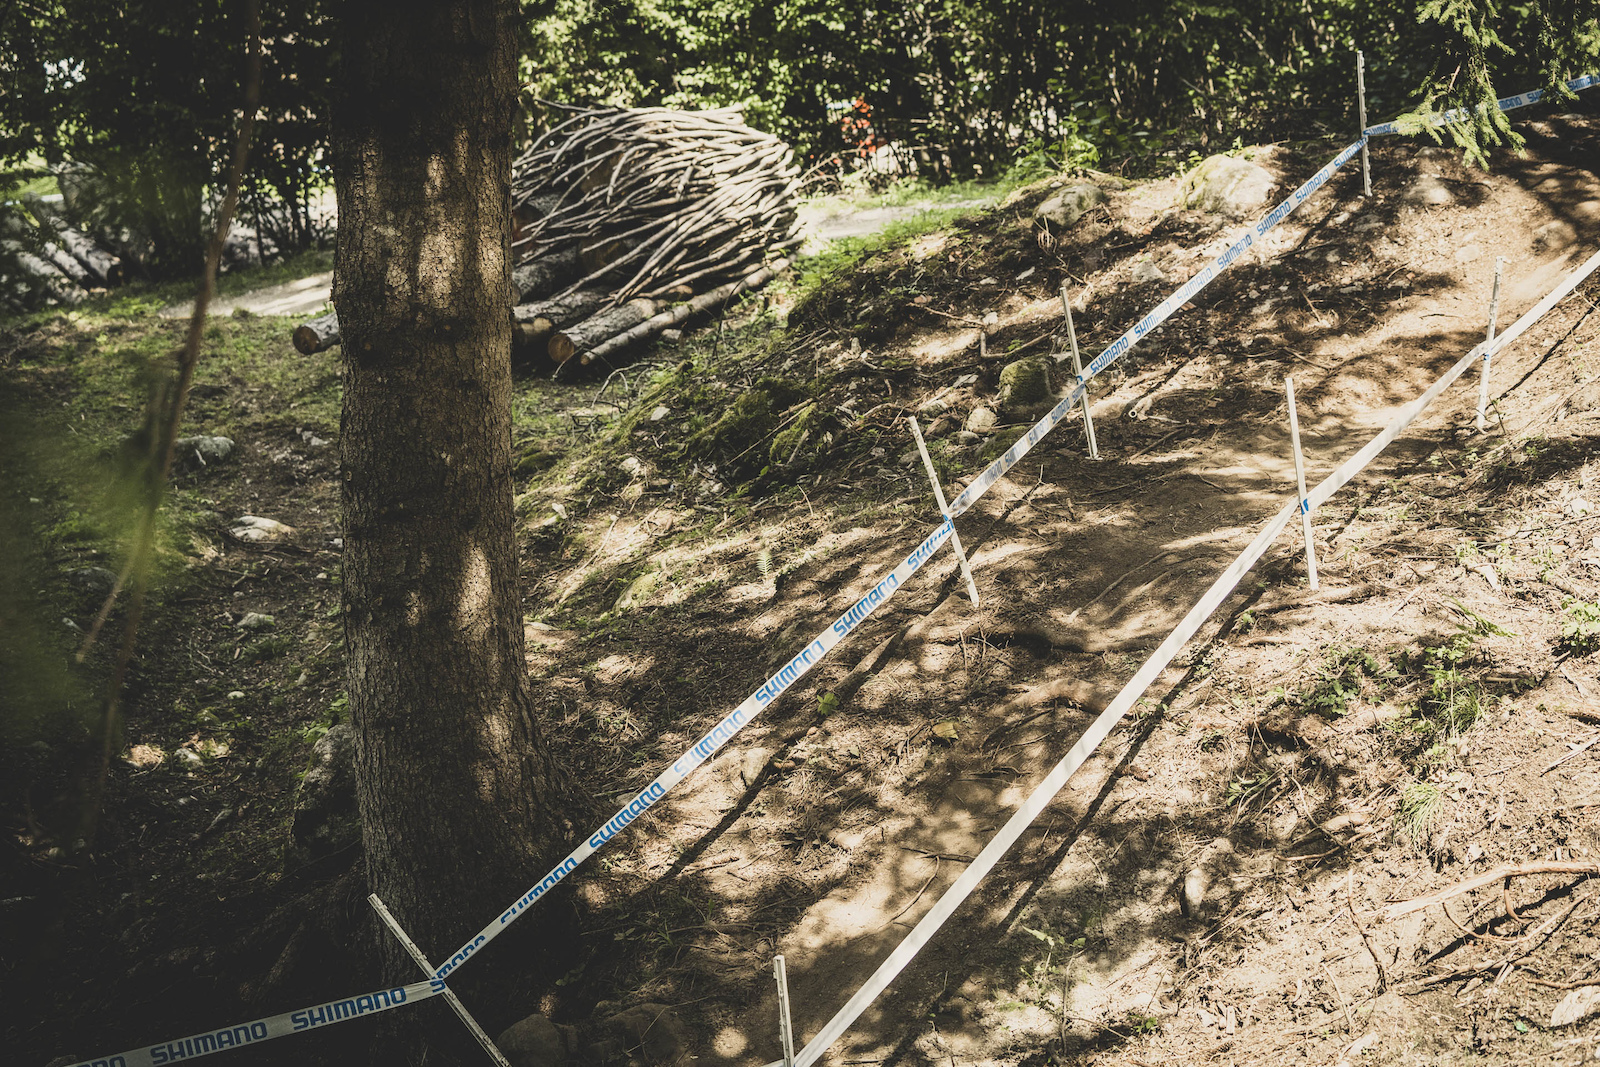 Lots of loam that will soon be ridden off exposing treacherous roots beneath.